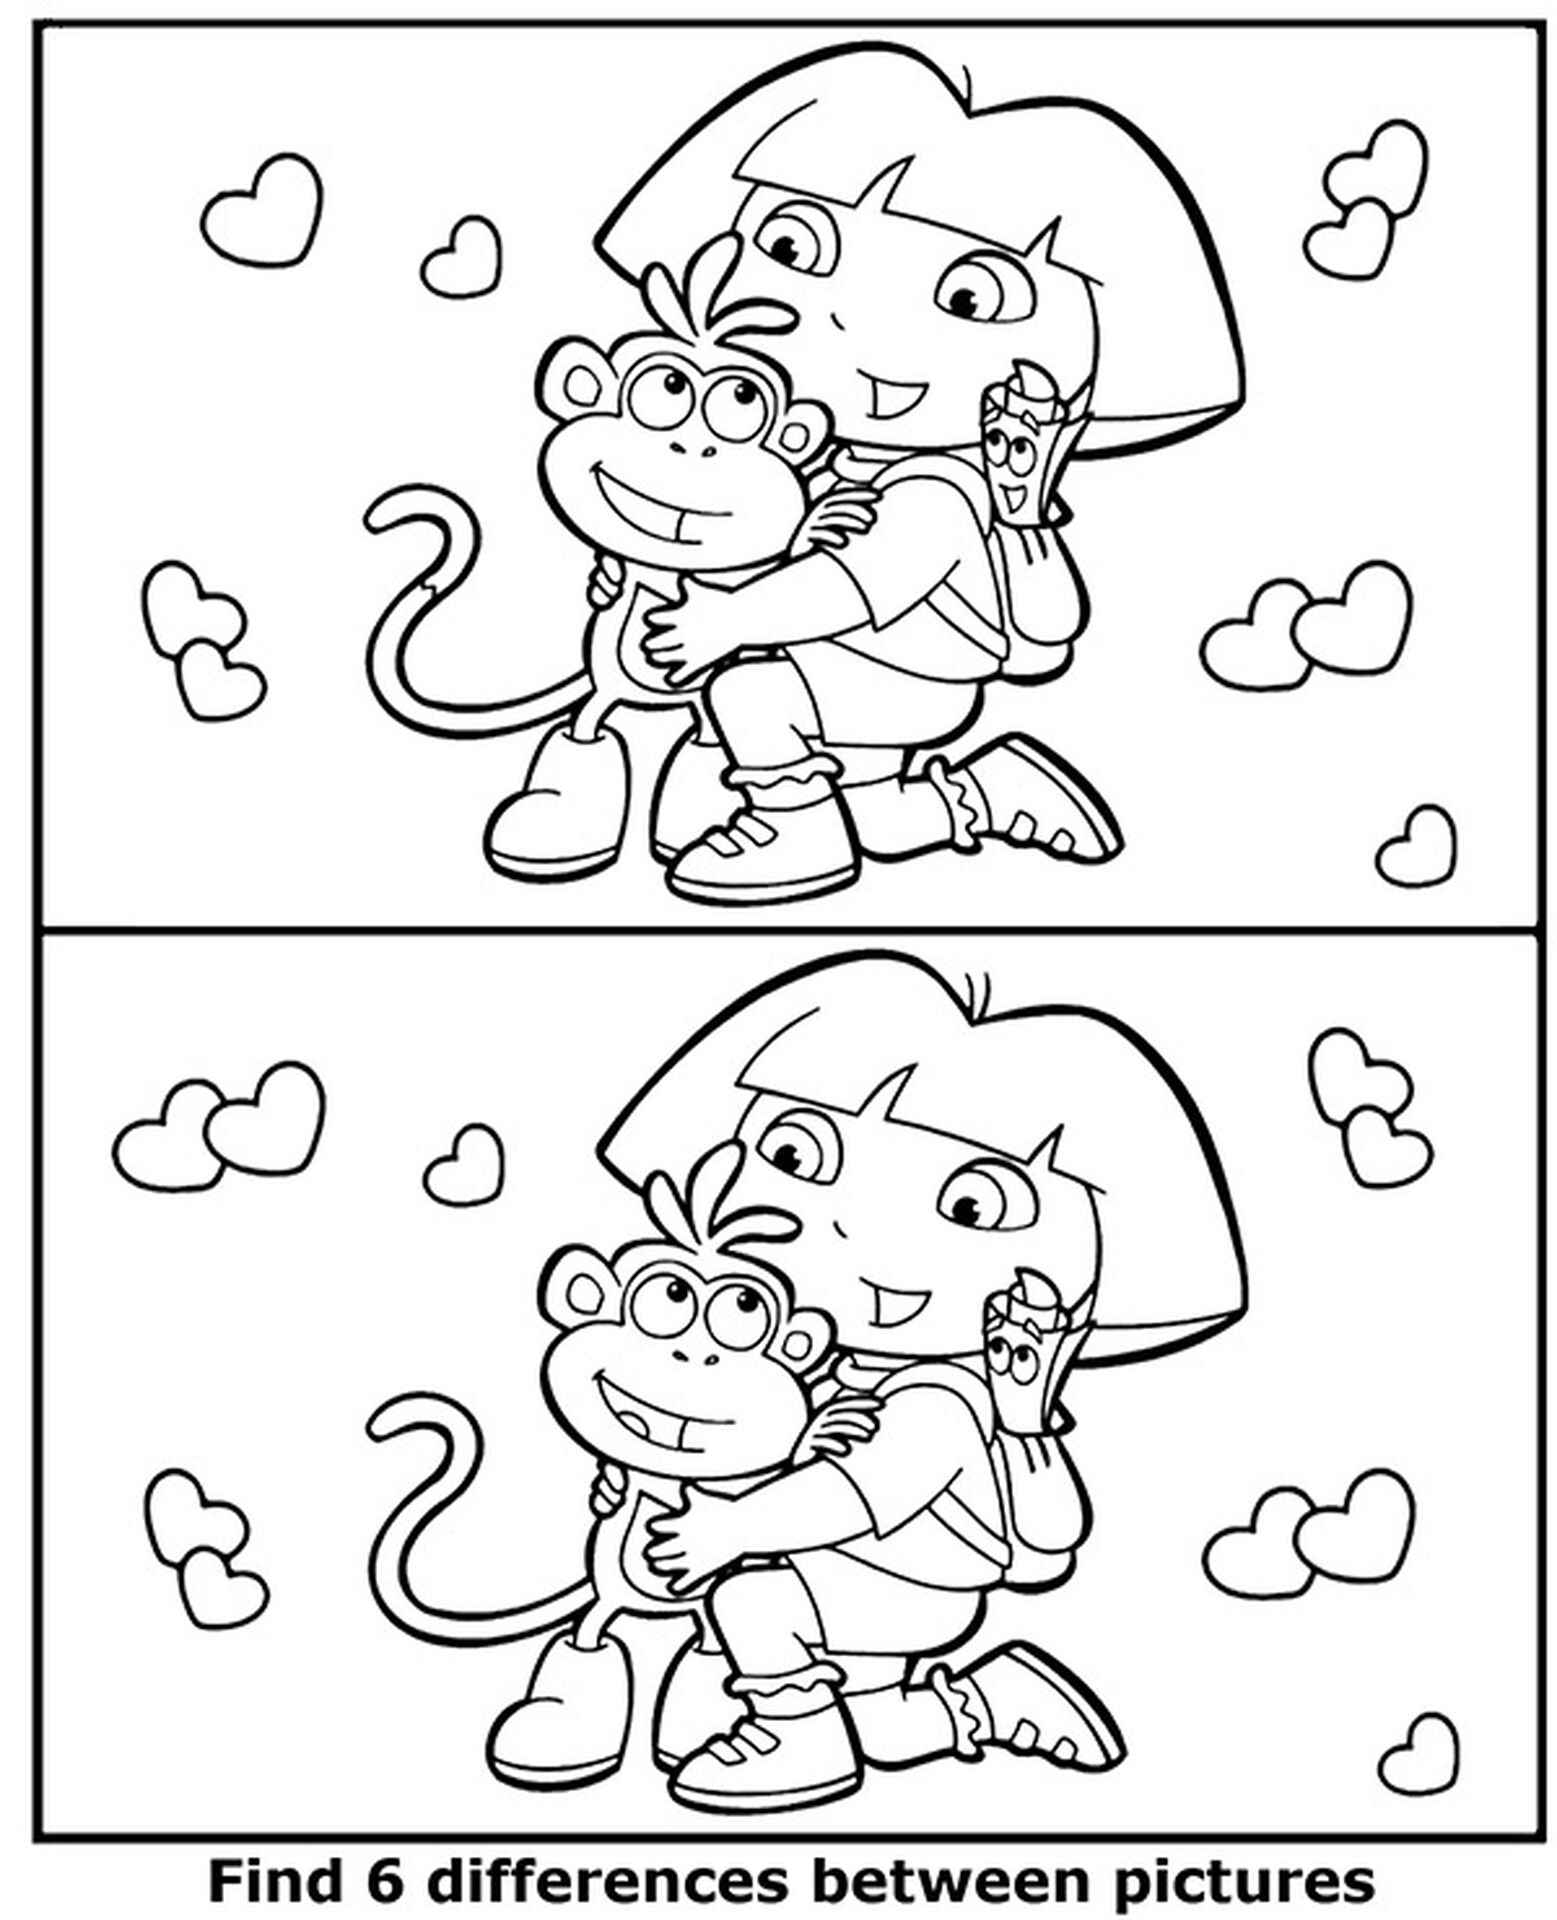 Find 6 Differences Between Pictures Dora Coloring Page